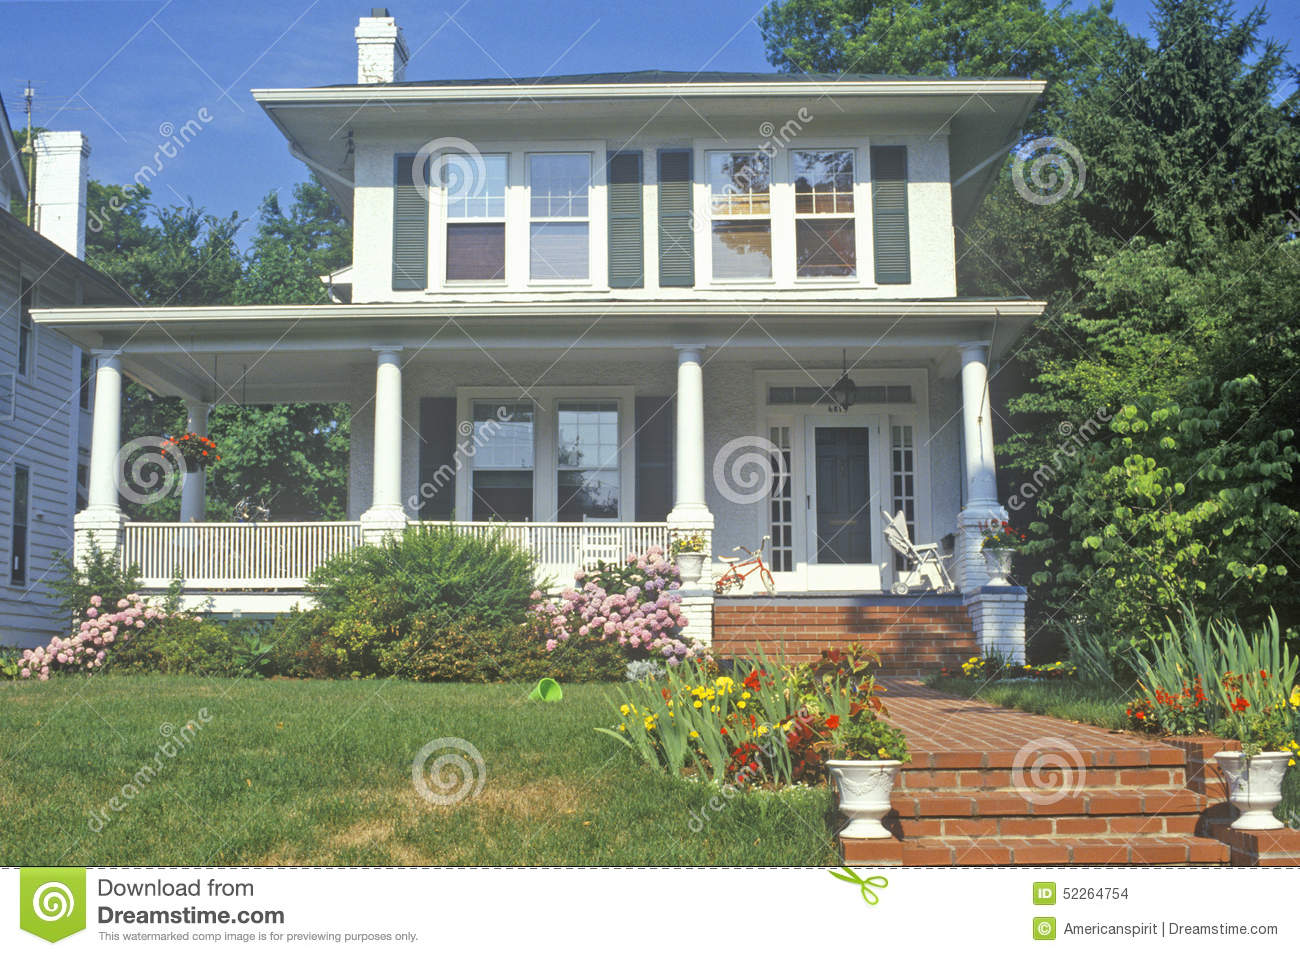 Home in chevy chase maryland stock photo image 52264754 - Maison ecologique maryland chavy chase ...